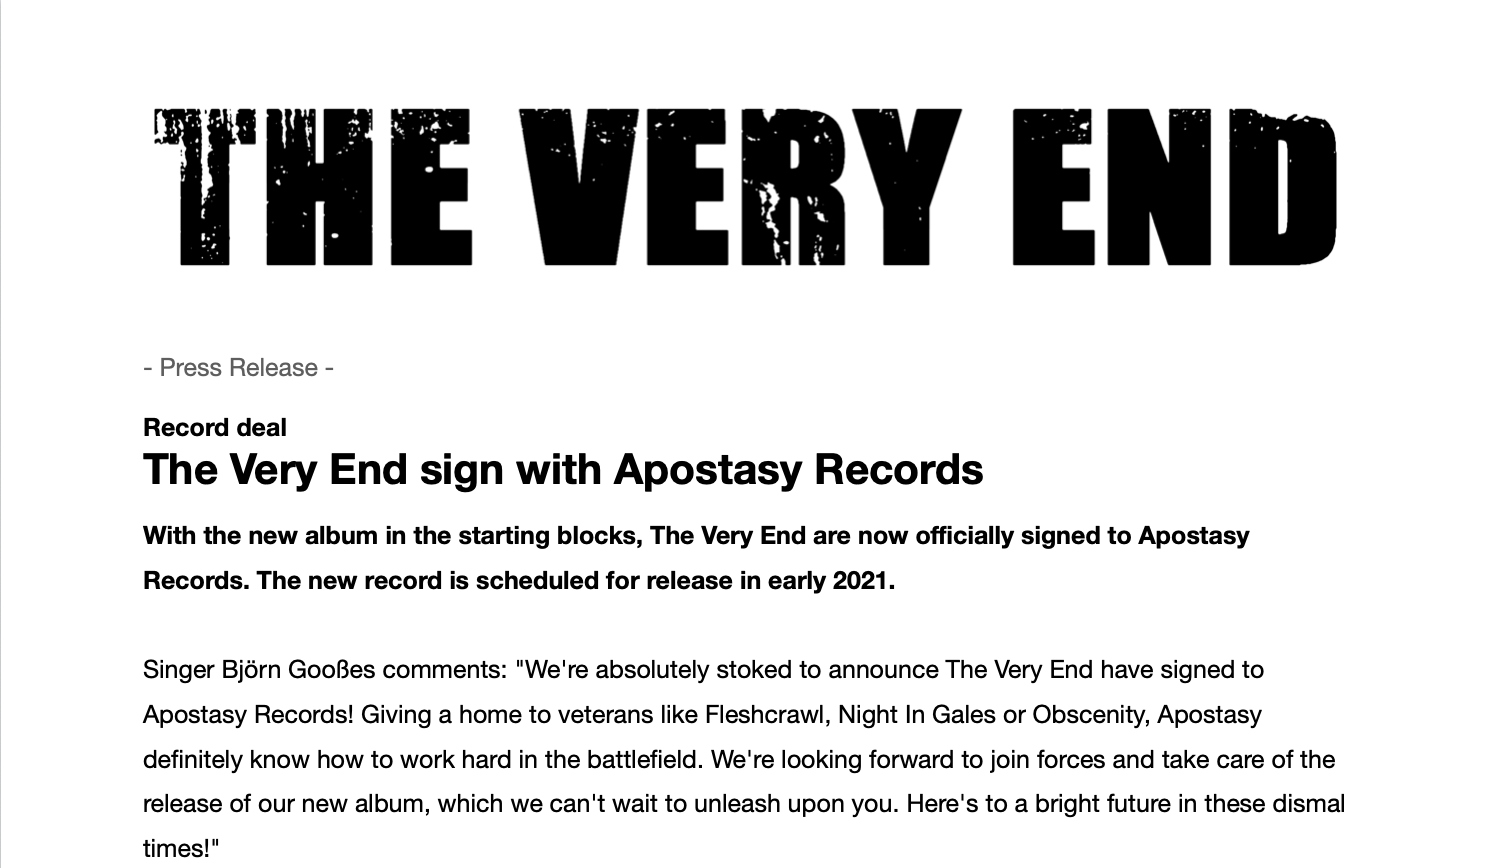 The Very End sign with Apostasy Records - press release